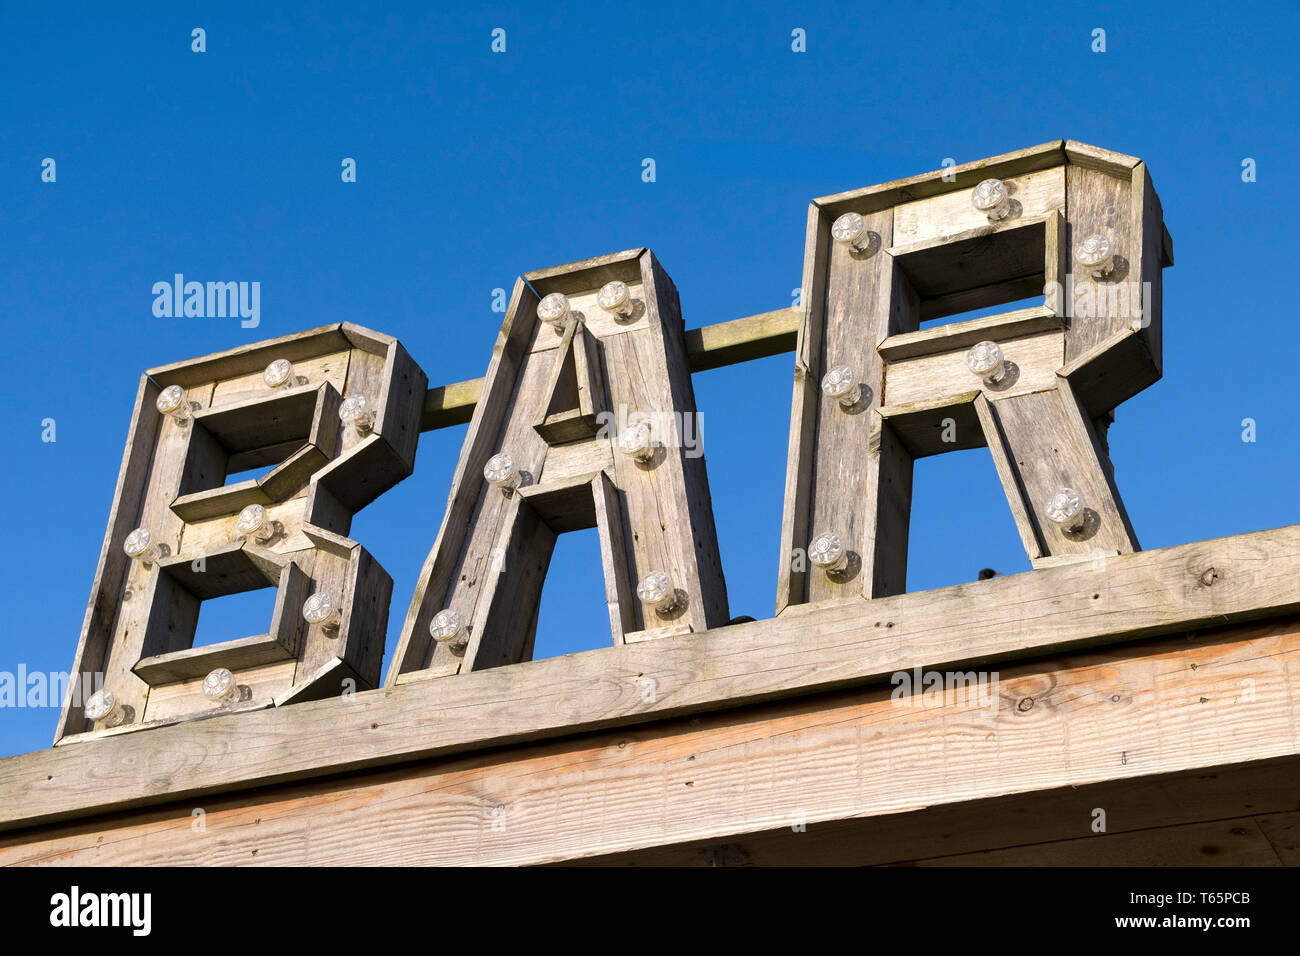 A wooden sign for the Bar at Fistral in Newquay in Cornwall. - Stock Image